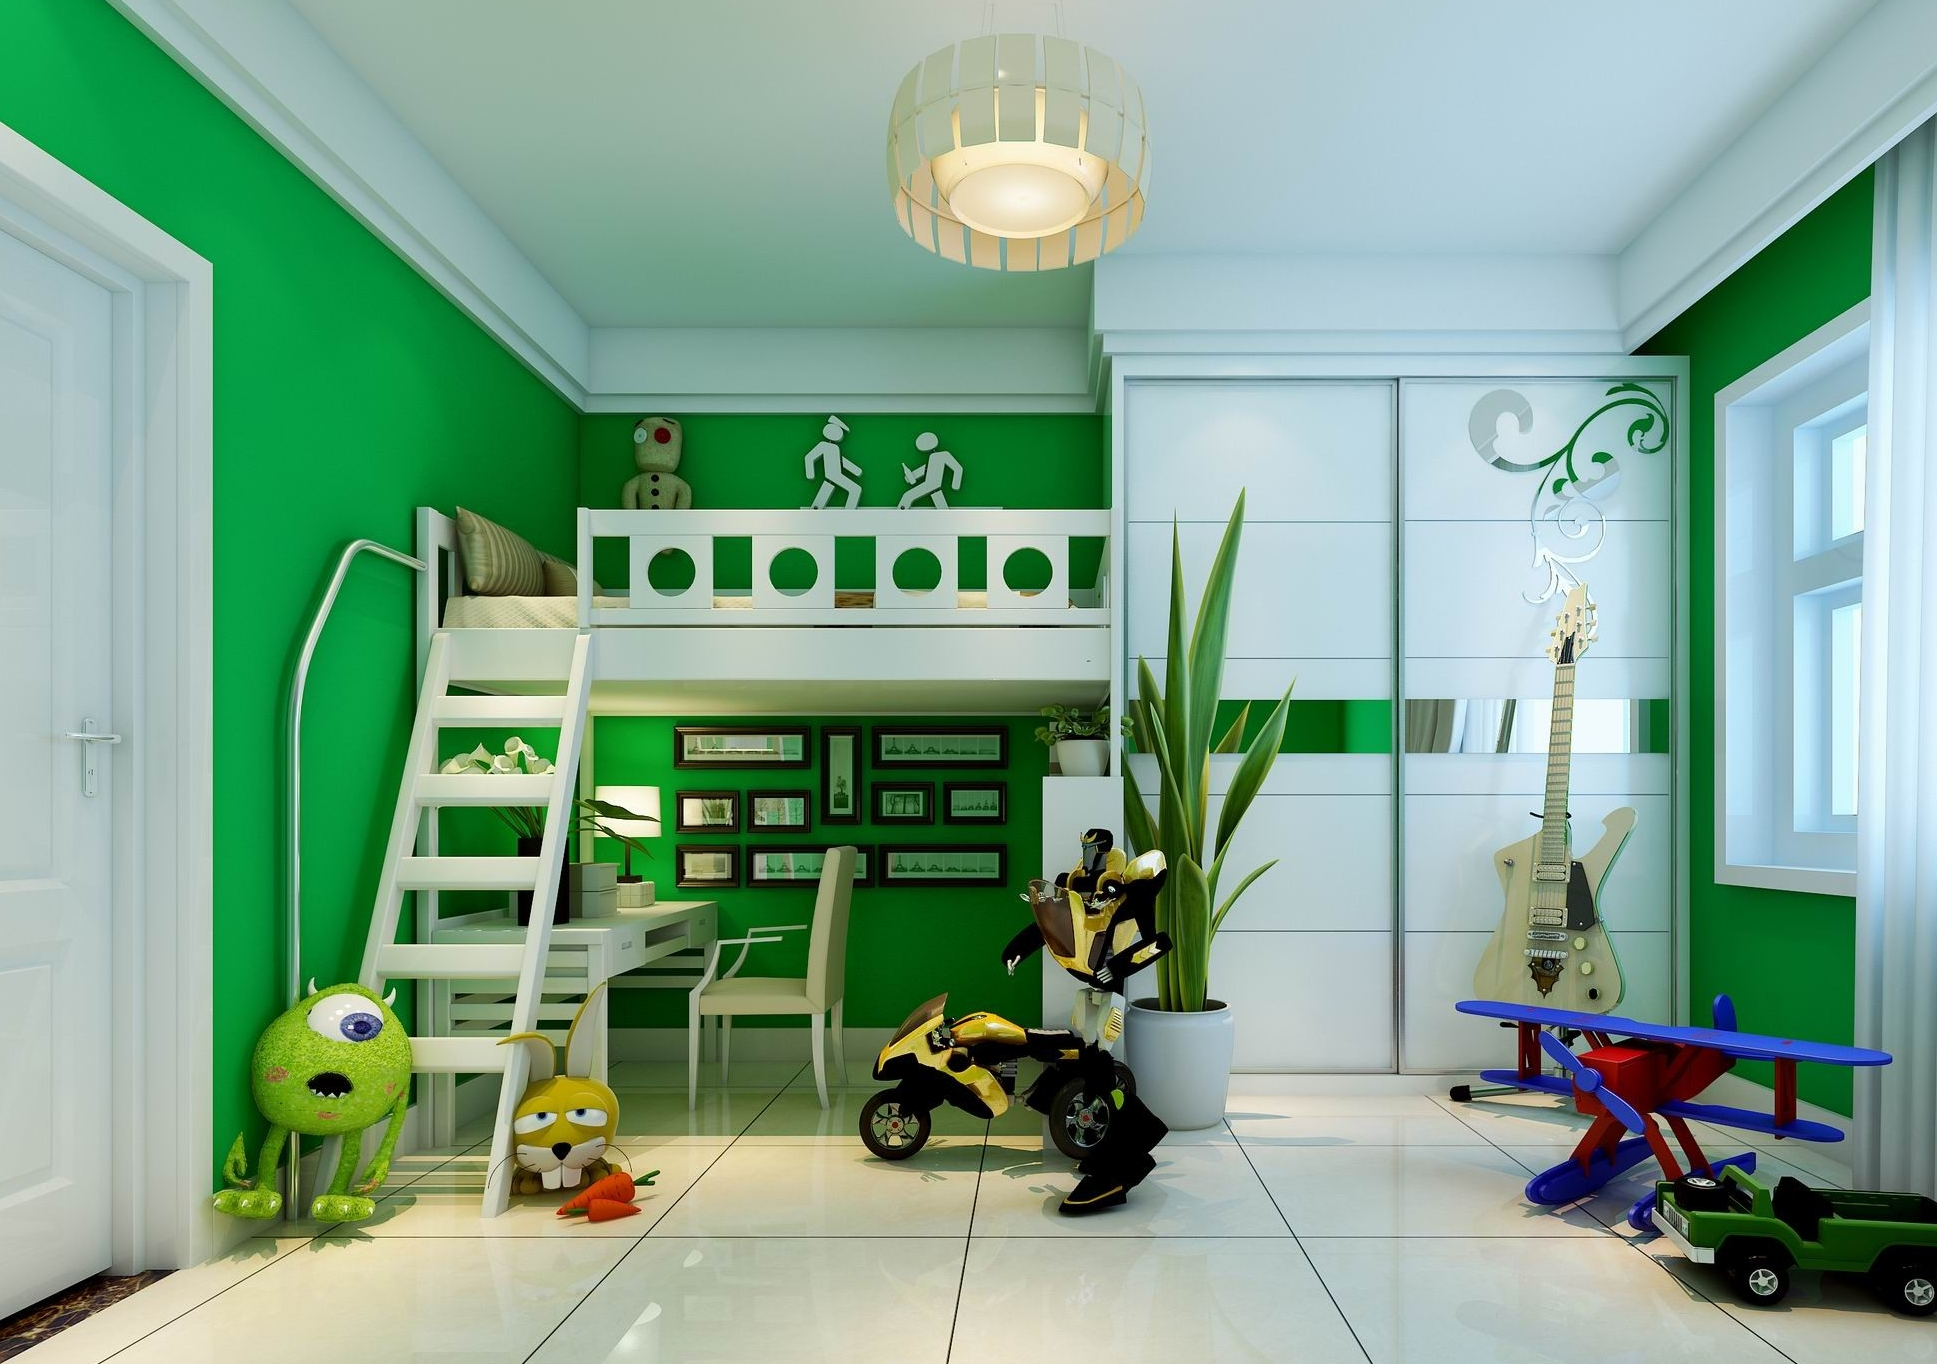 Modern kids bedroom with wooden floor full 3d model max - Beds for small space model ...